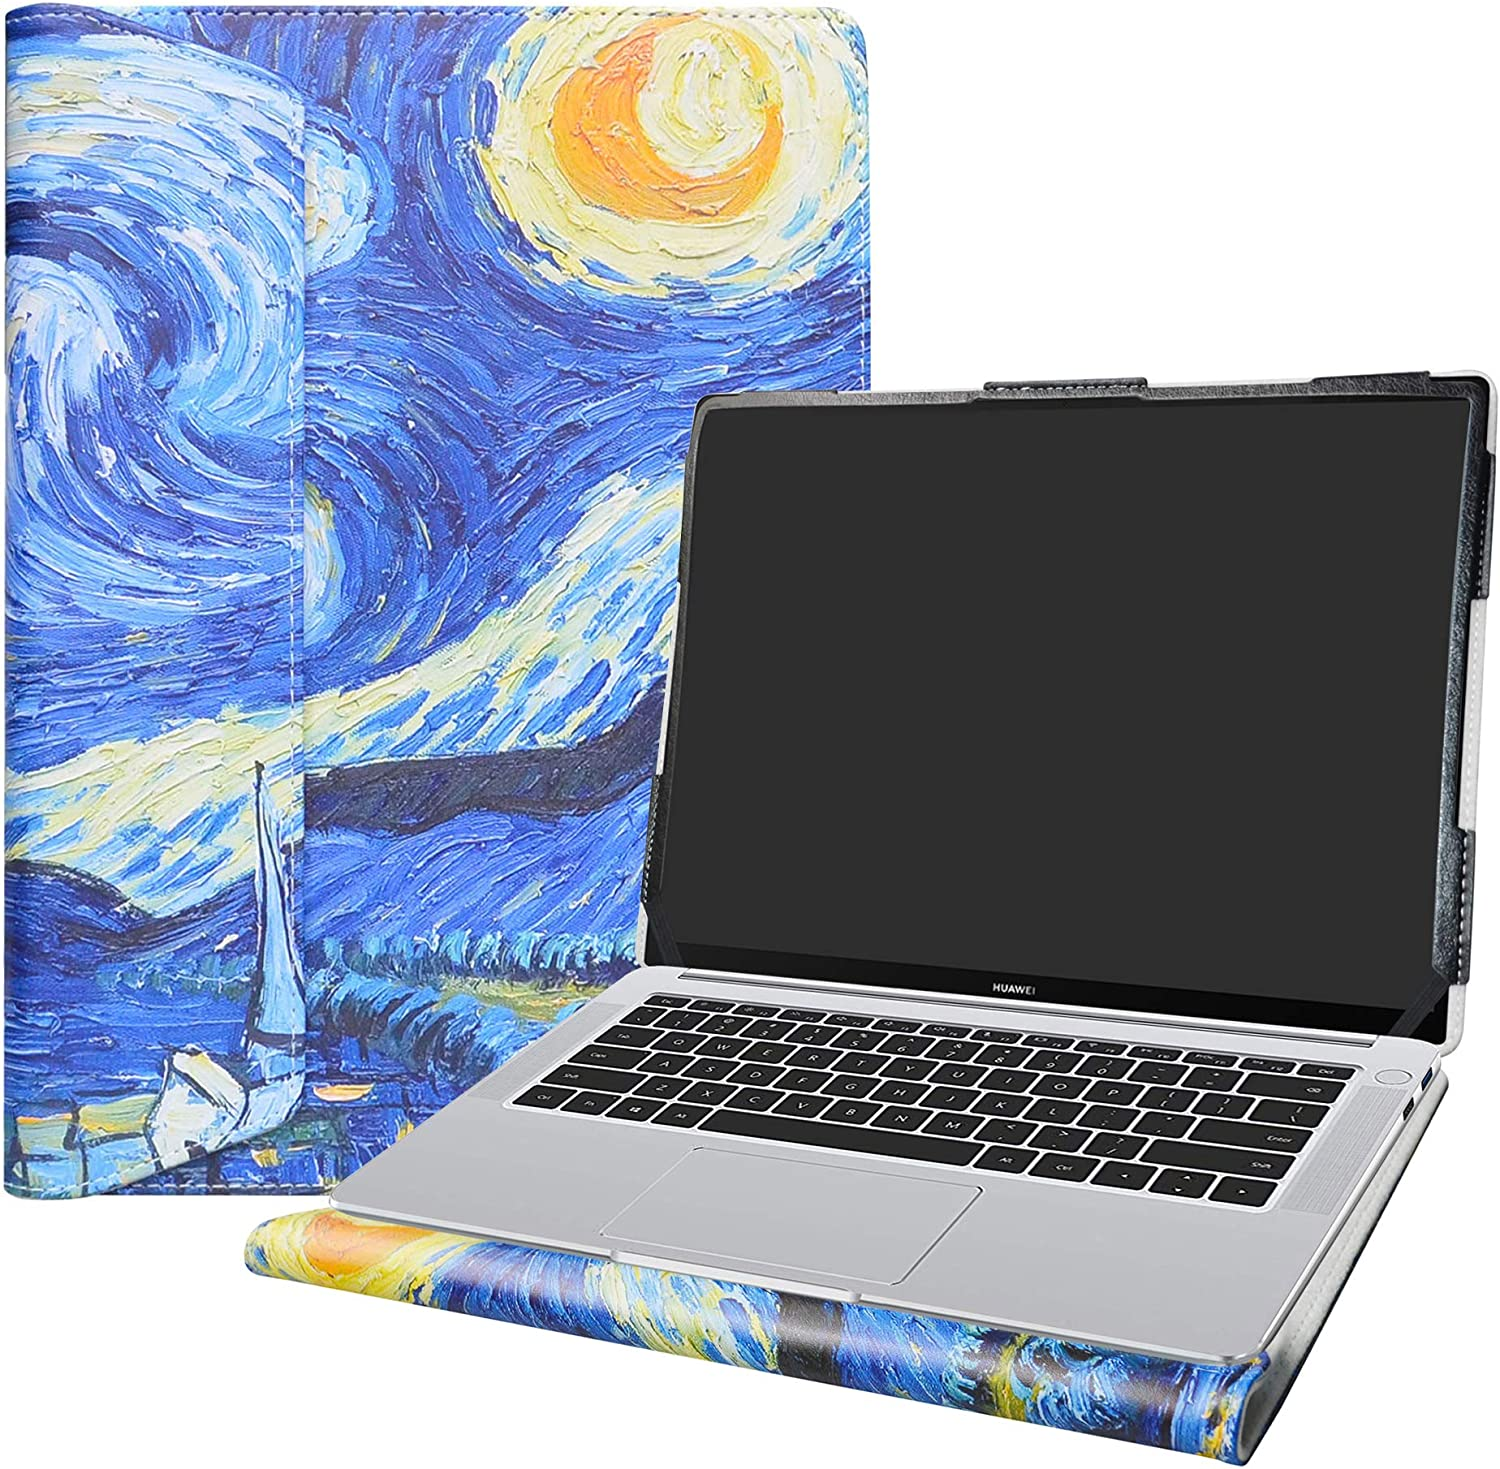 """Alapmk Protective Case Cover for 14"""" HP ProBook x360 435 G7 & Huawei Matebook 14 2019/Huawei Matebook 14 2020 Laptop(Not fit Matebook X/Matebook D/Matebook X Pro/Matebook 13),Starry Night"""